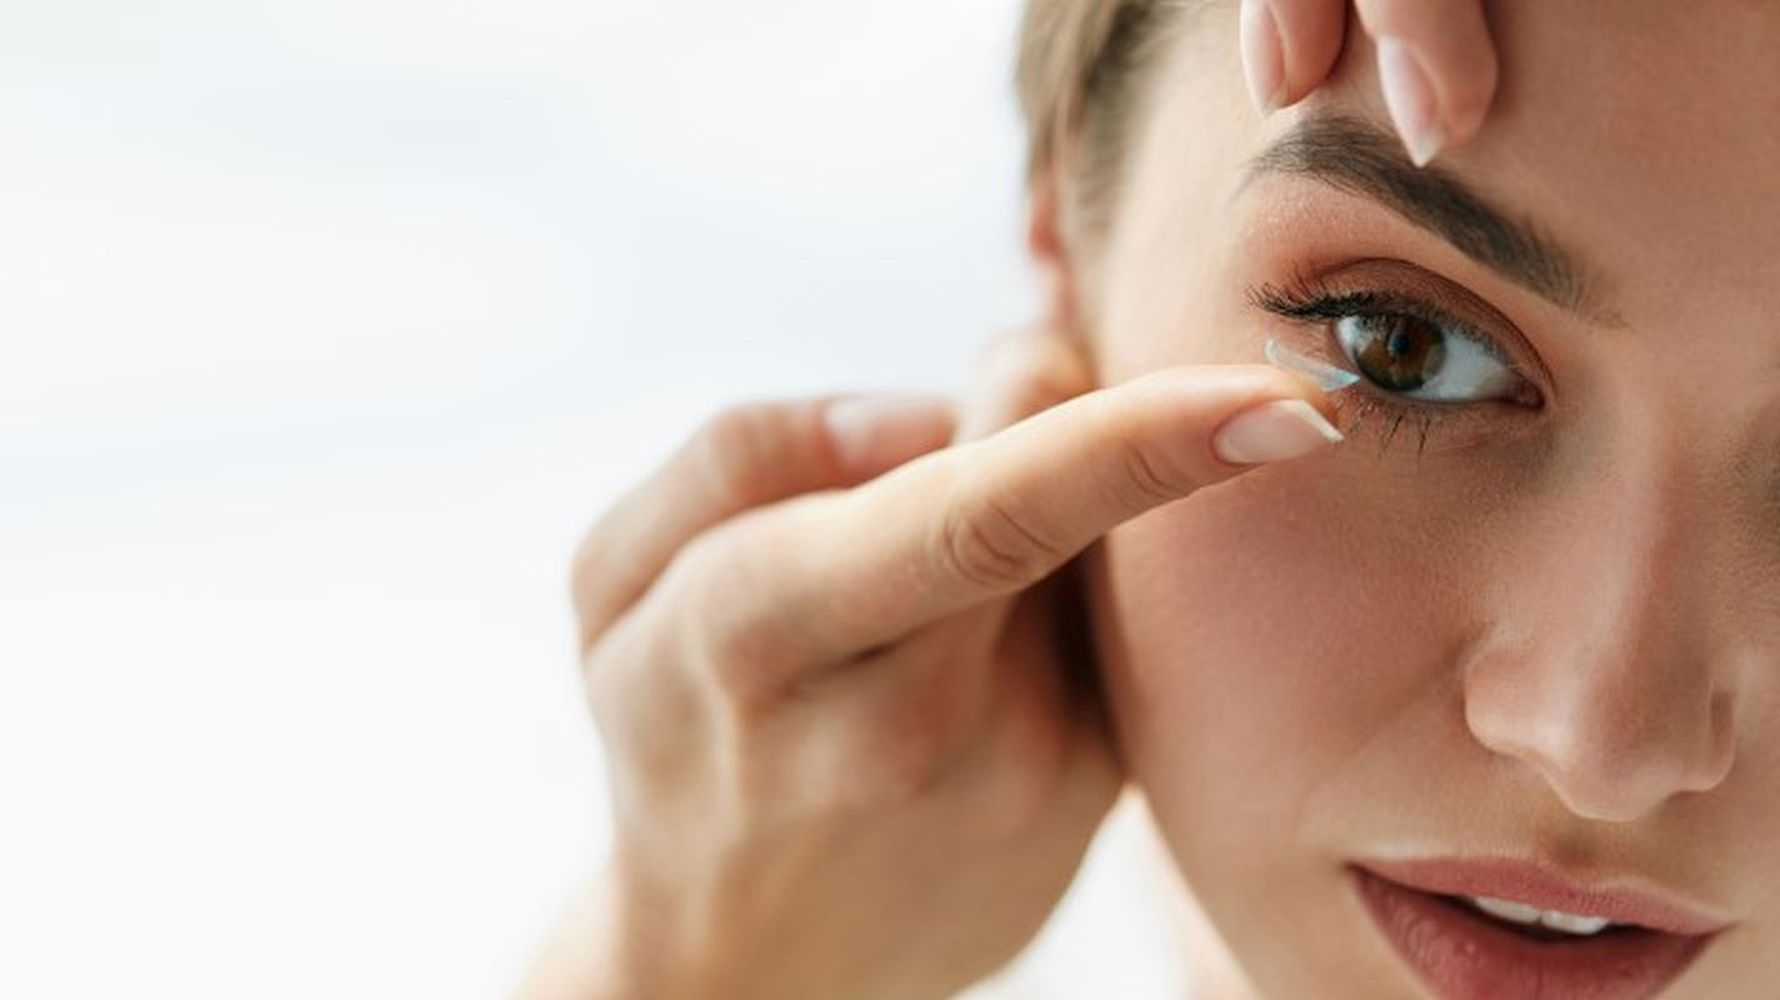 Regular examination is important when wearing contact lenses